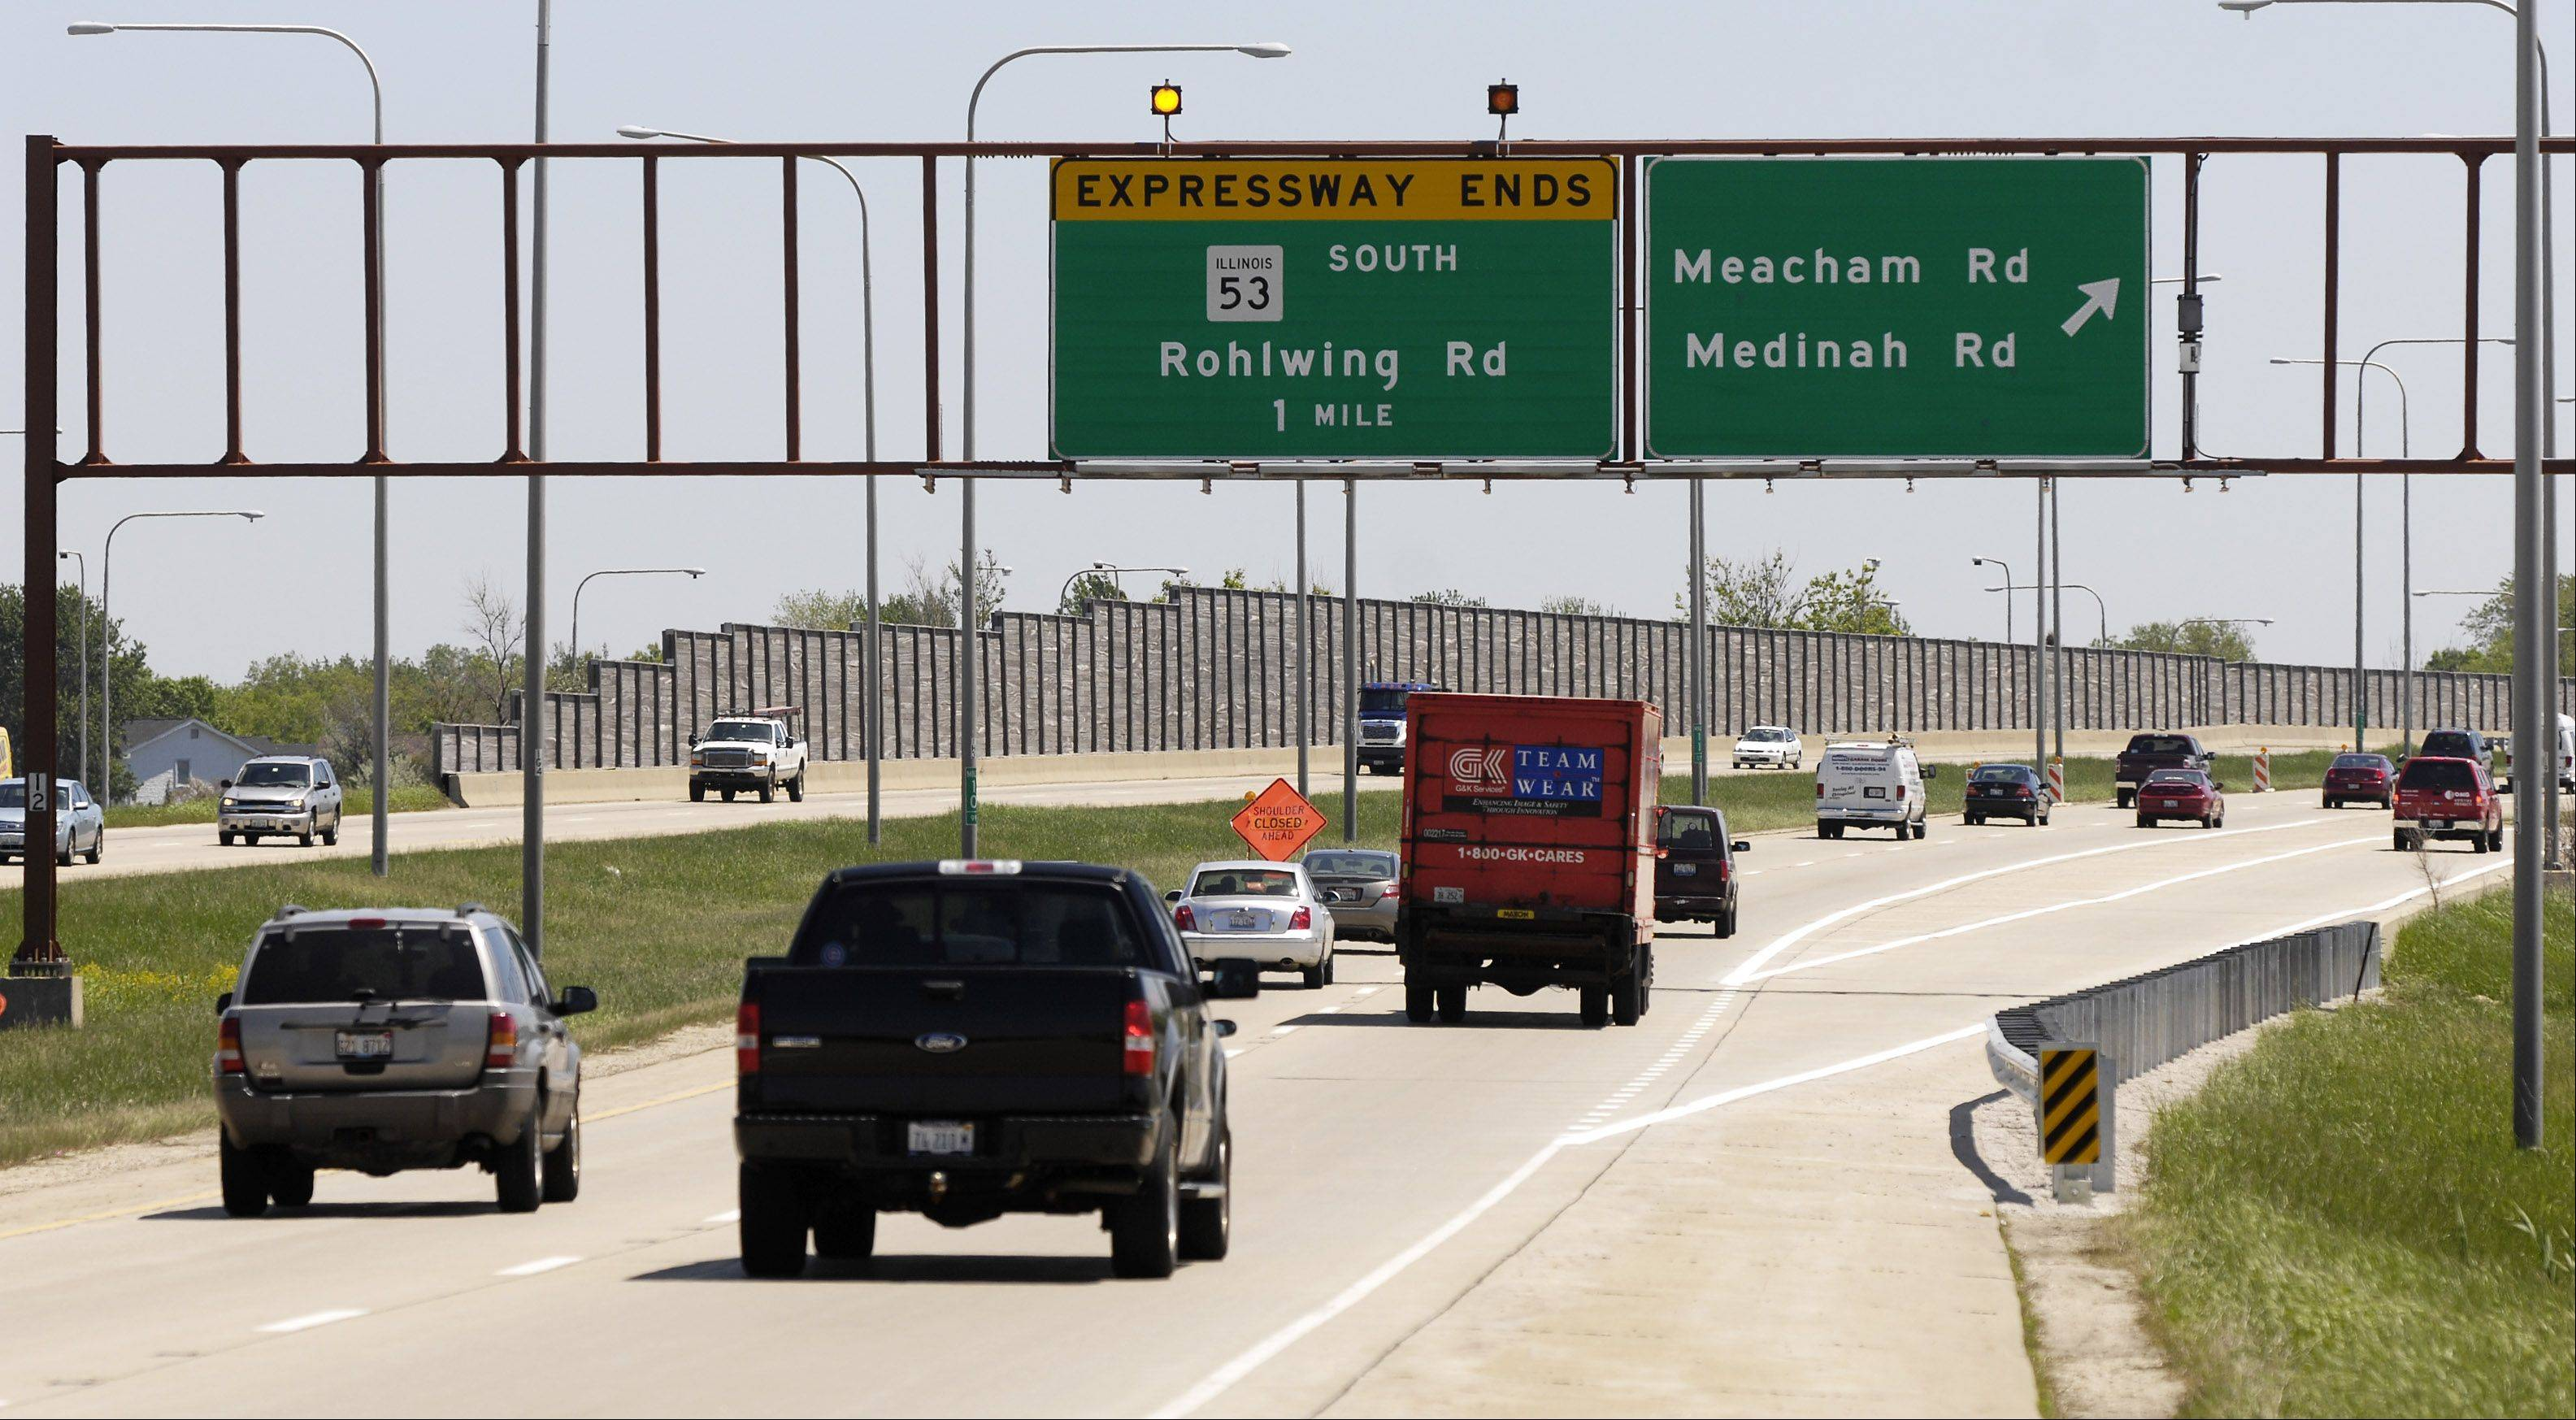 A sign shows one end of the Elgin-O�Hare Expressway, which stretches between Itasca and Hanover Park, but never reaches Elgin or O�Hare International Airport.